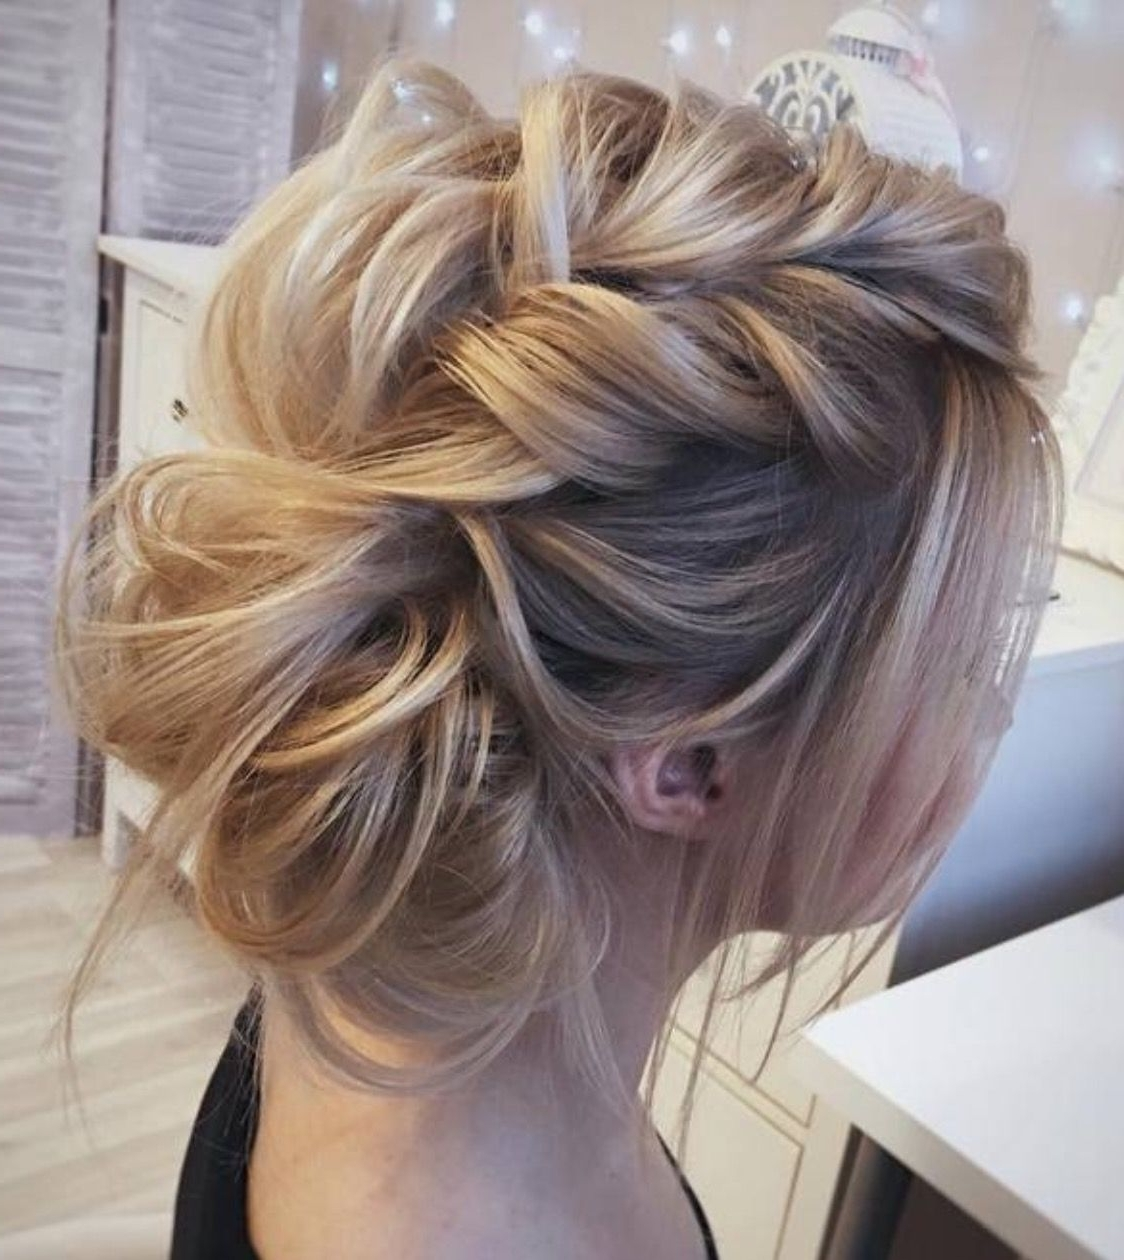 Very Loose Fishtail Braid Pulled Apart Into A Bun With Messy, Wispy For Soft Updo Hairstyles For Medium Length Hair (Gallery 10 of 15)